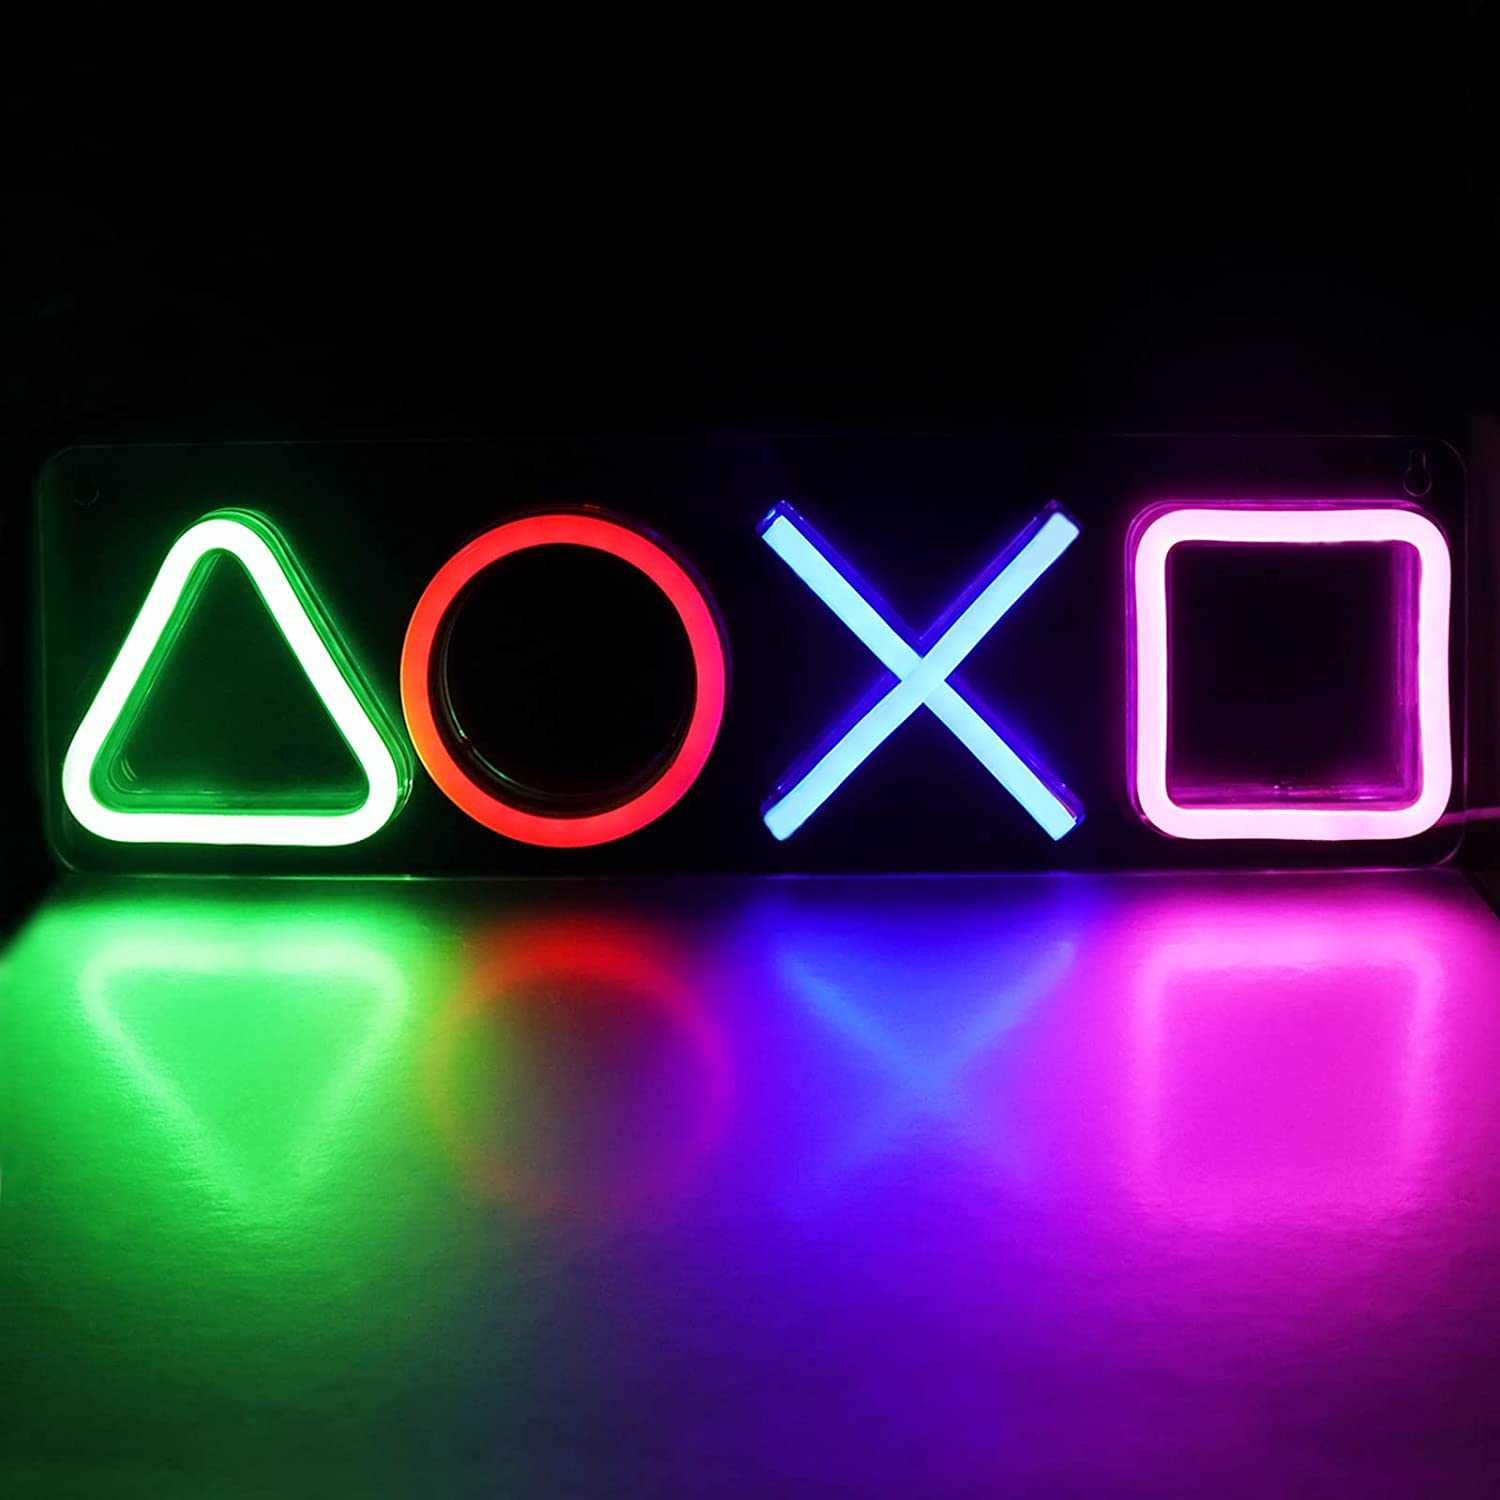 Gaming Neon Lights Signs for Playstation Icon Bedroom Wall Decor, LED Neon Light for Game Room, Living Room, Men Cave, Bar Club Decoration Setup Accessories Ornament.